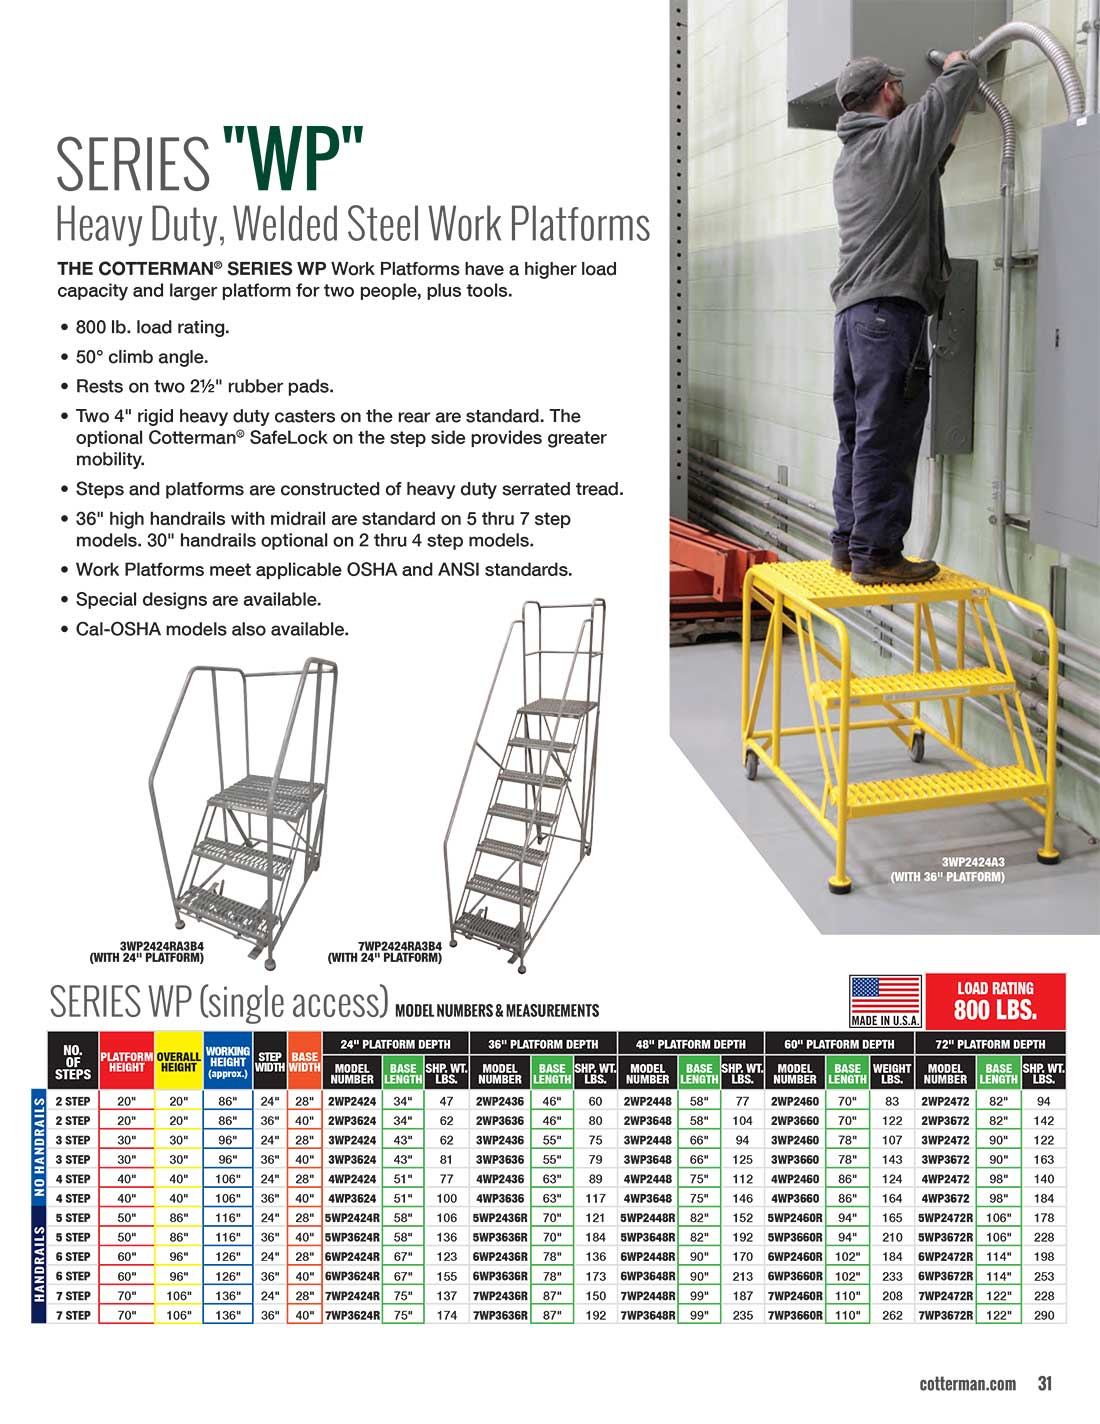 Cotterman Series WP Work Platform